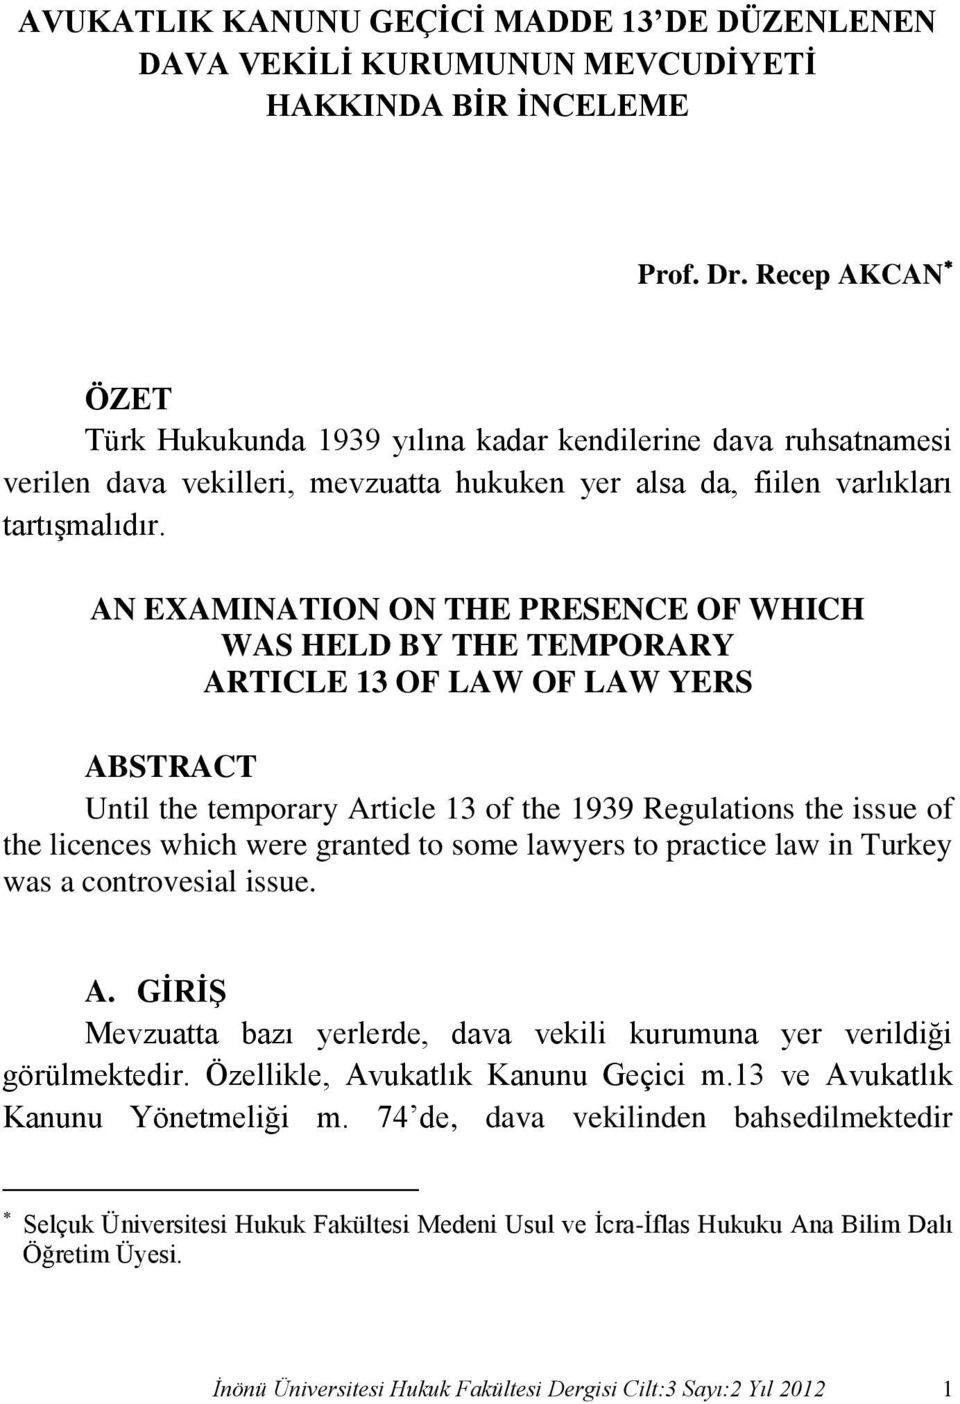 AN EXAMINATION ON THE PRESENCE OF WHICH WAS HELD BY THE TEMPORARY ARTICLE 13 OF LAW OF LAW YERS ABSTRACT Until the temporary Article 13 of the 1939 Regulations the issue of the licences which were